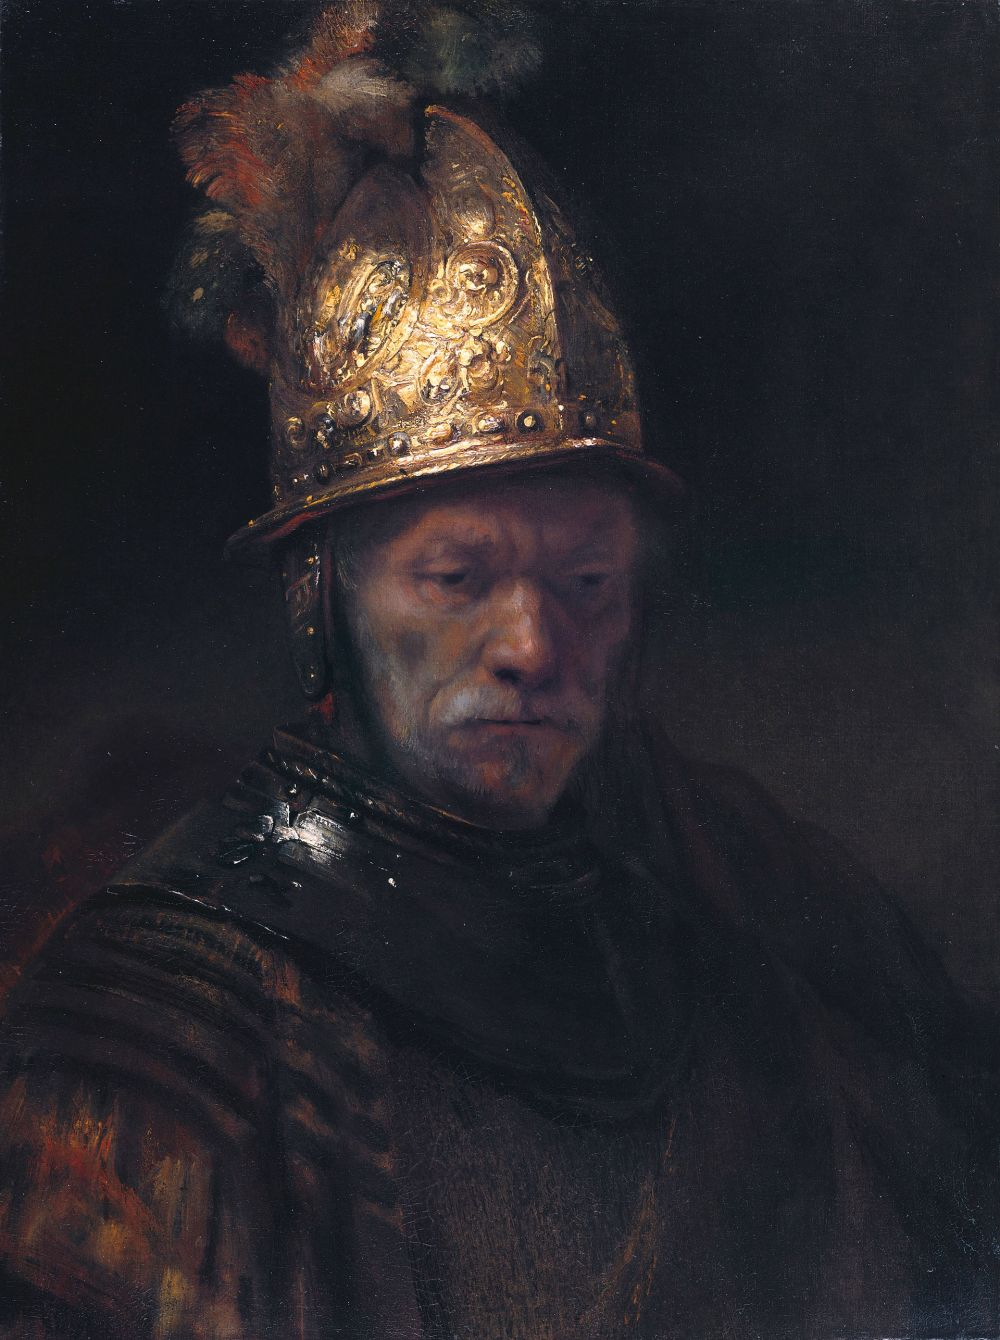 Rembrandt_(circle)_-_The_Man_with_the_Golden_Helmet_-_Google_Art_Project